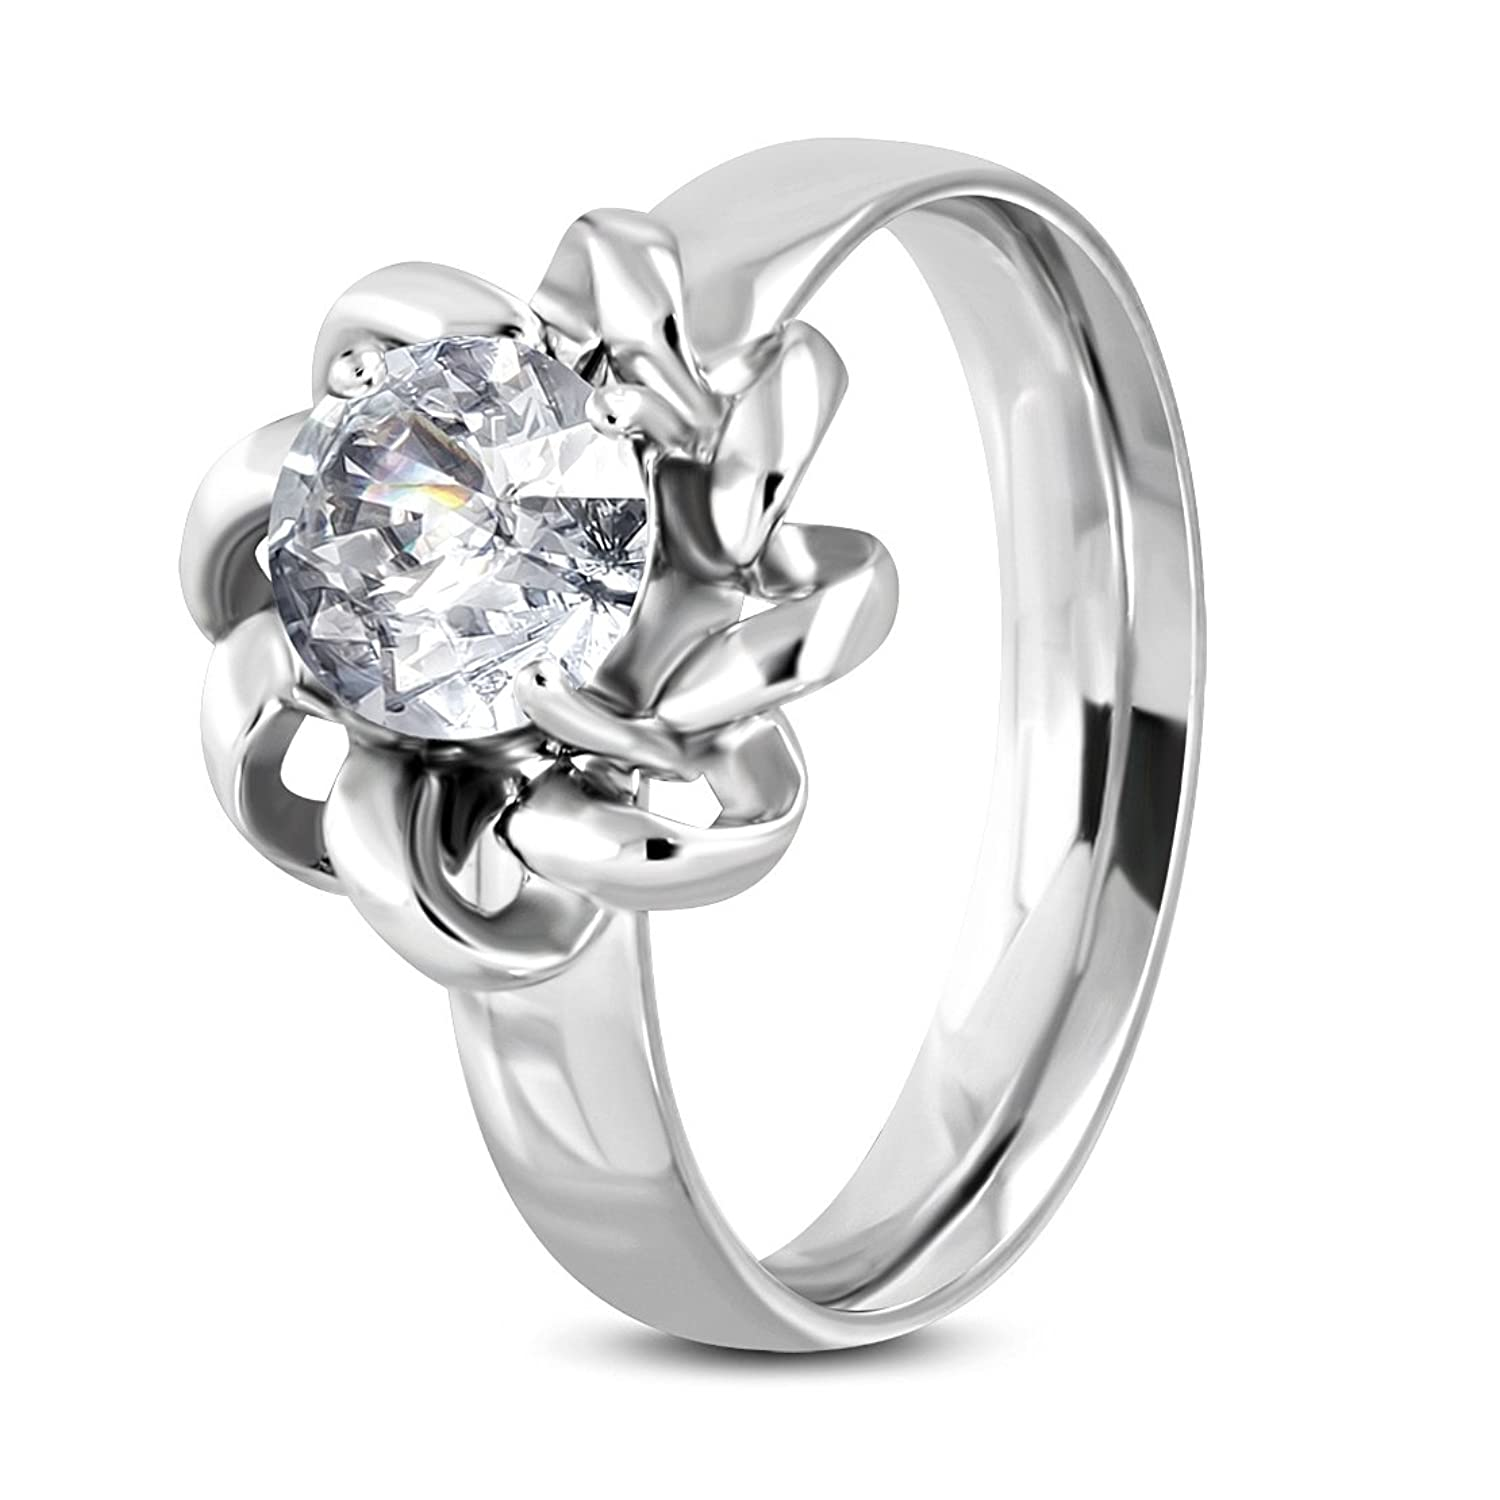 Stainless Steel Prong-Set Flower Comfort Fit Fancy Ring with Clear CZ